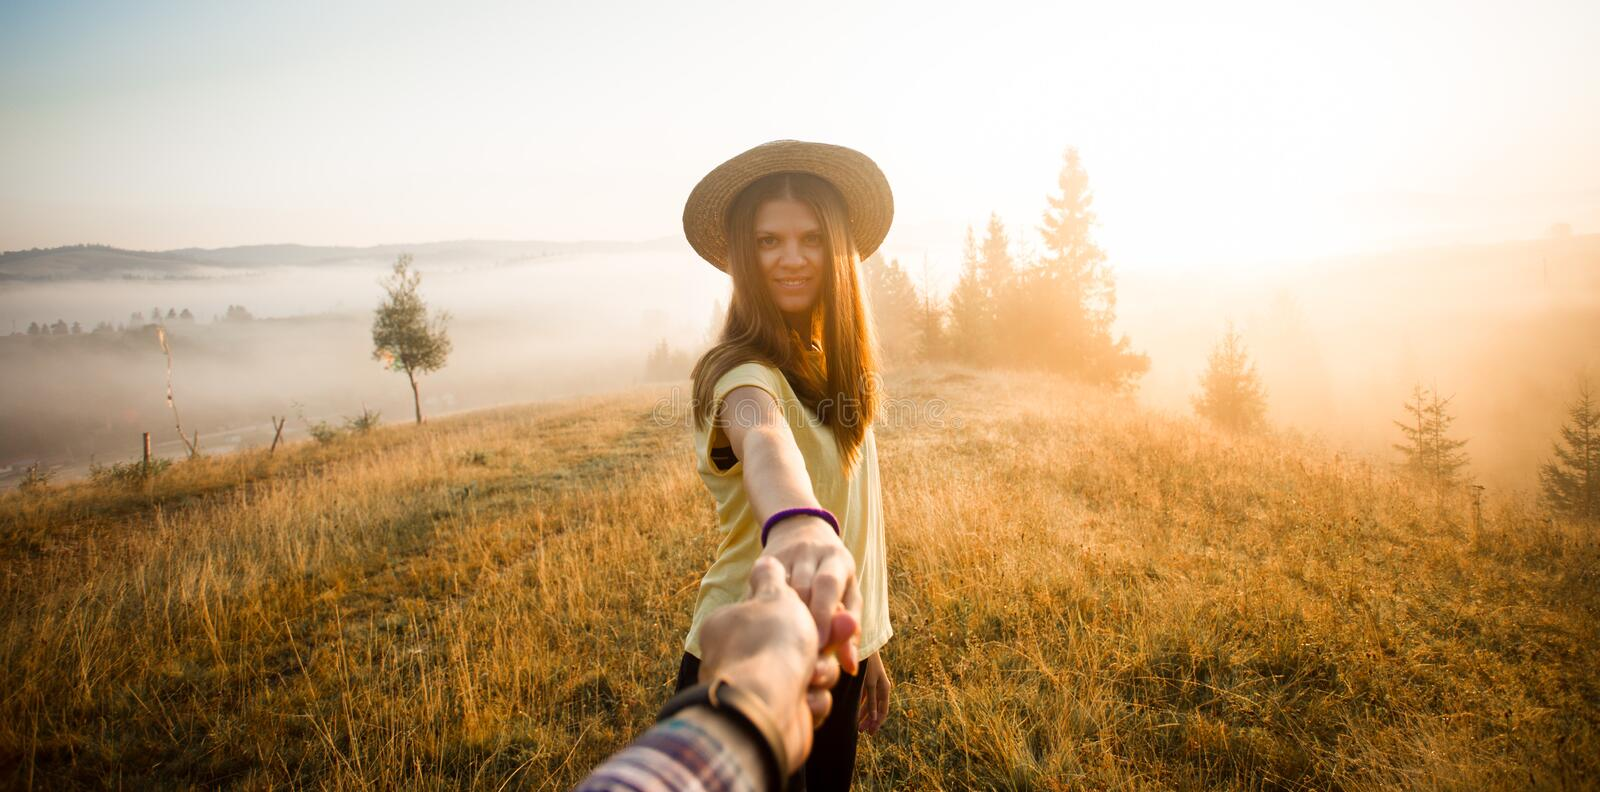 Follow me concept. Couple in love holding hands. Woman in yellow shirt and straw hat holding man by hand going to autumn forest stock photography